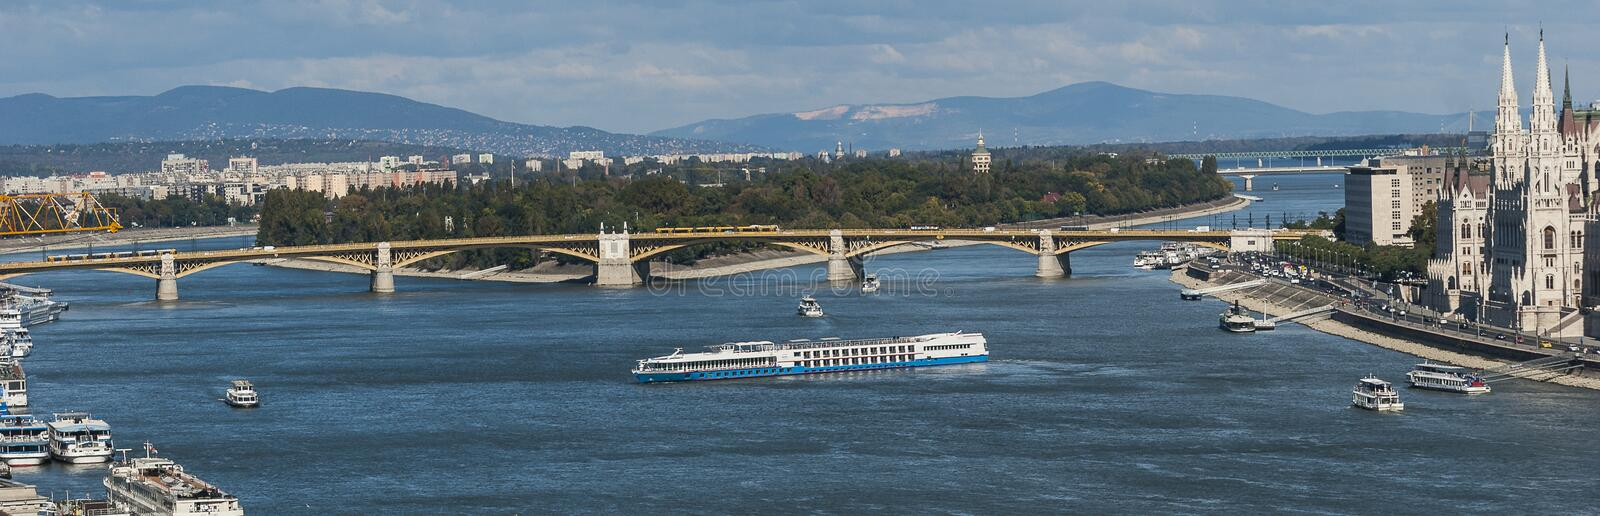 The Danube panorama with Margaret Island royalty free stock photo